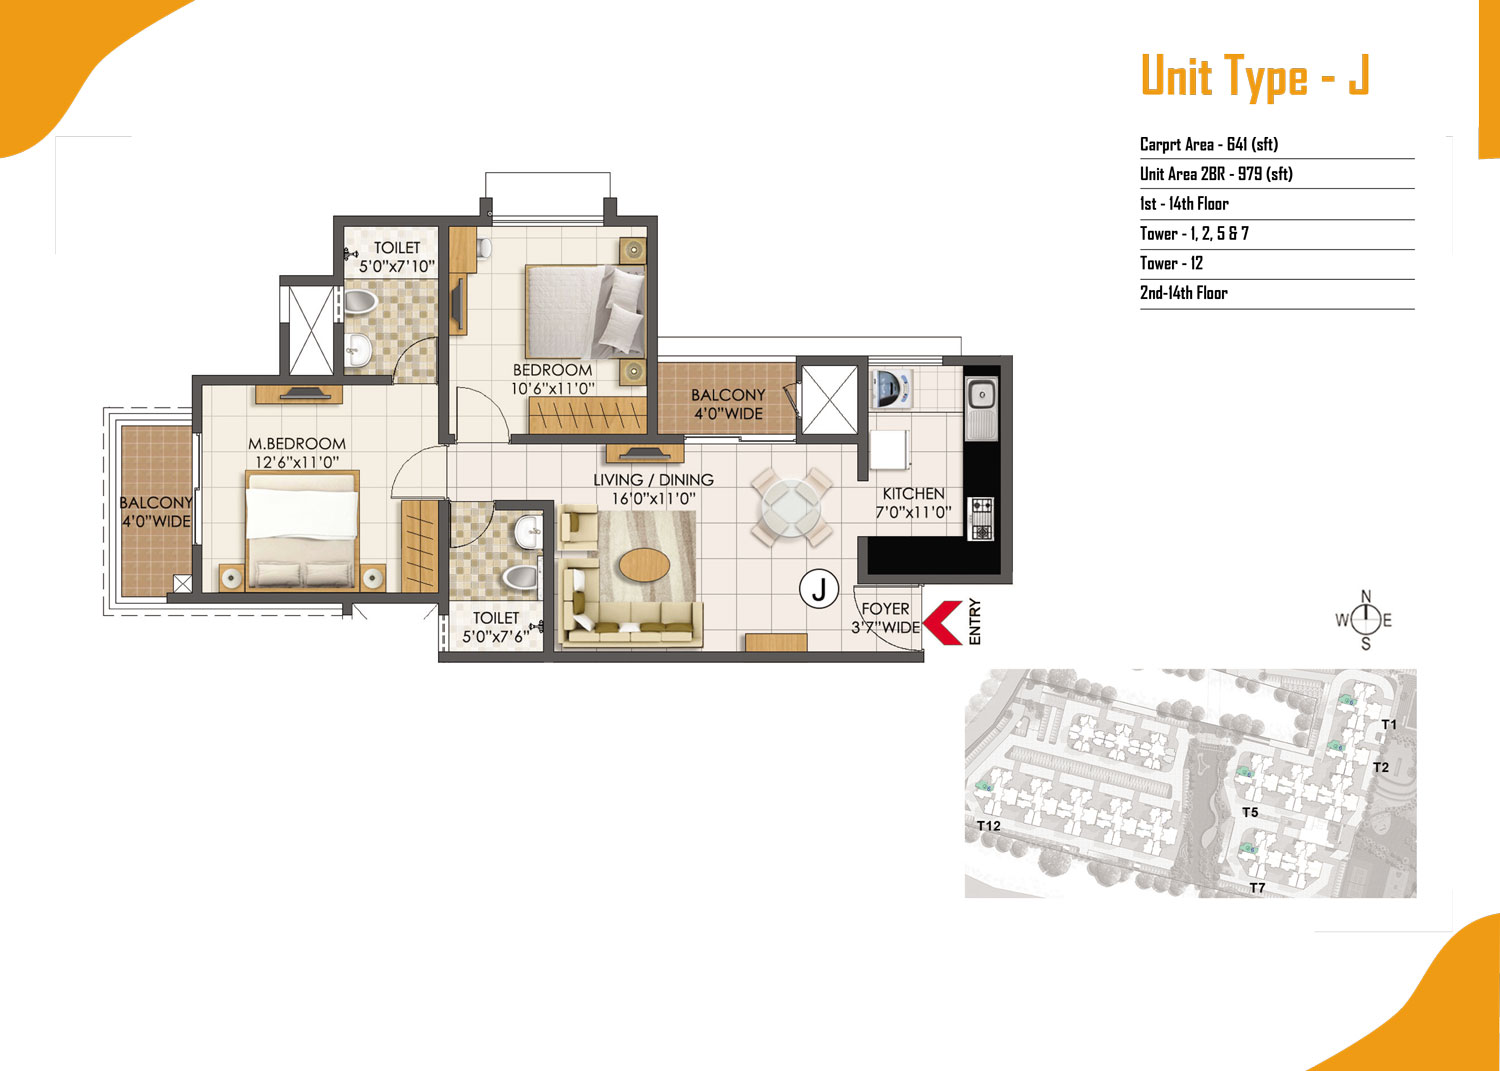 Type J - 2 Bed - 979 Sq Ft